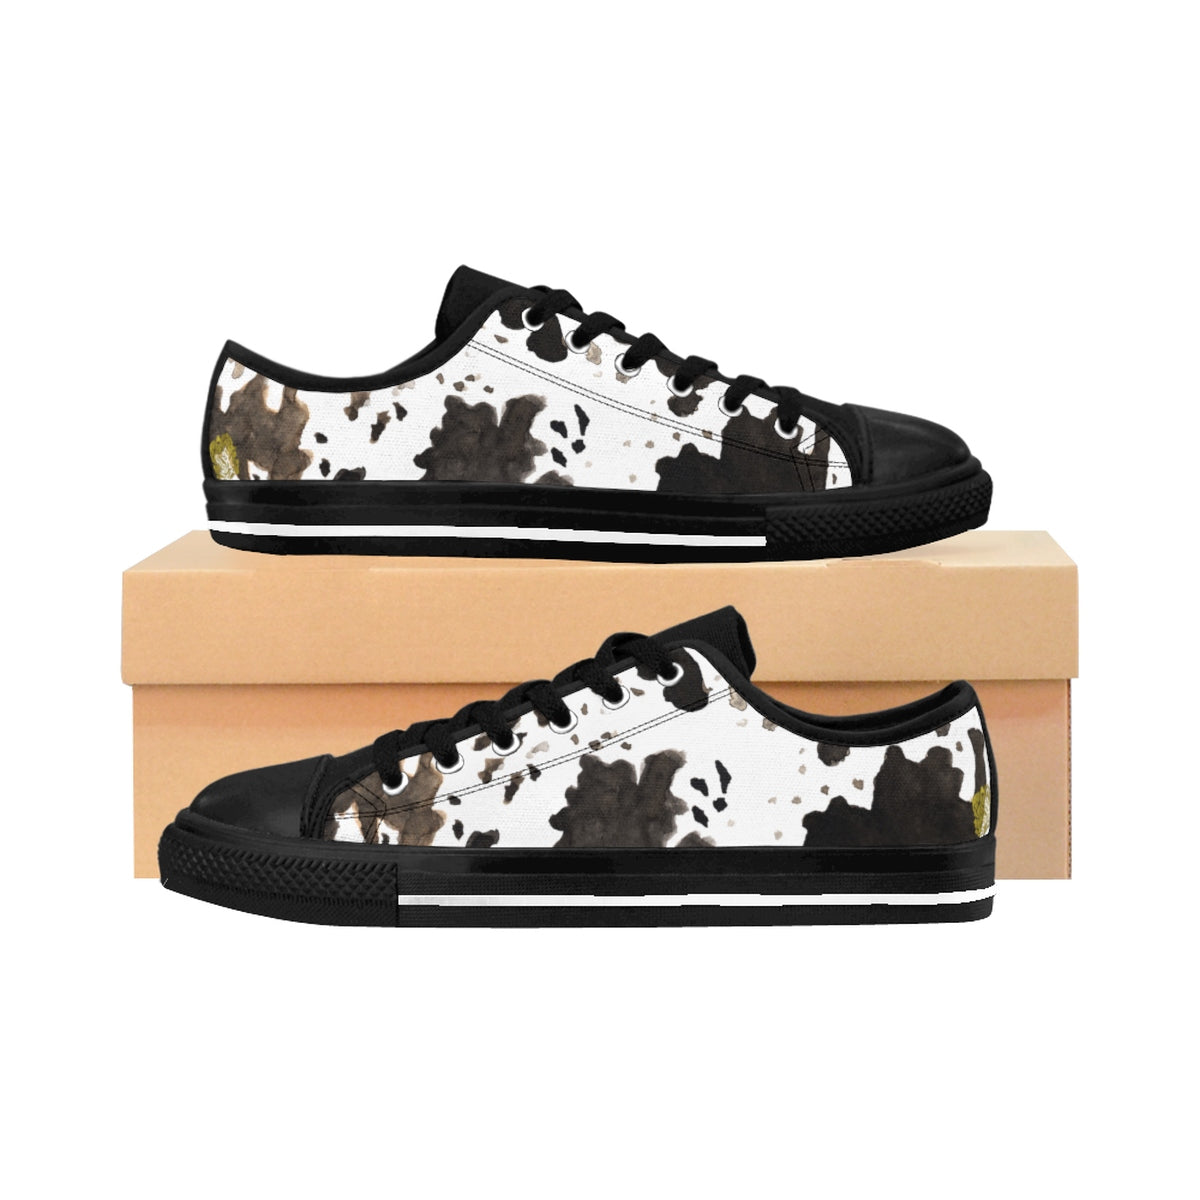 Cow Print Brown White Black Durable & Lightweight Women's Low Top Sneakers-Women's Low Top Sneakers-US 10-Black-Heidi Kimura Art LLC